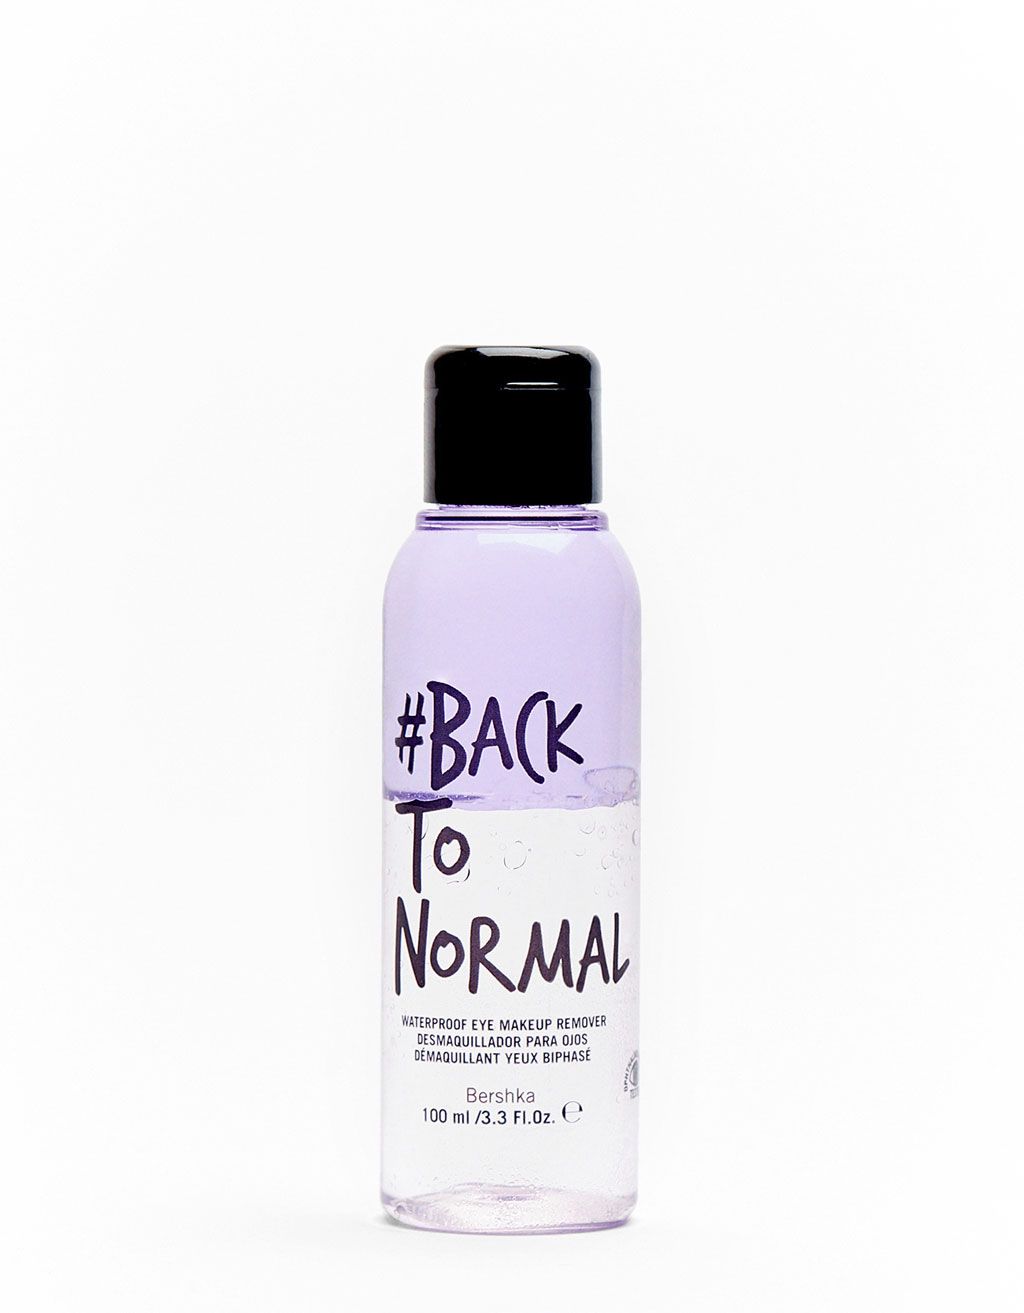 Waterproof Eye Makeup Remover #backtonormal